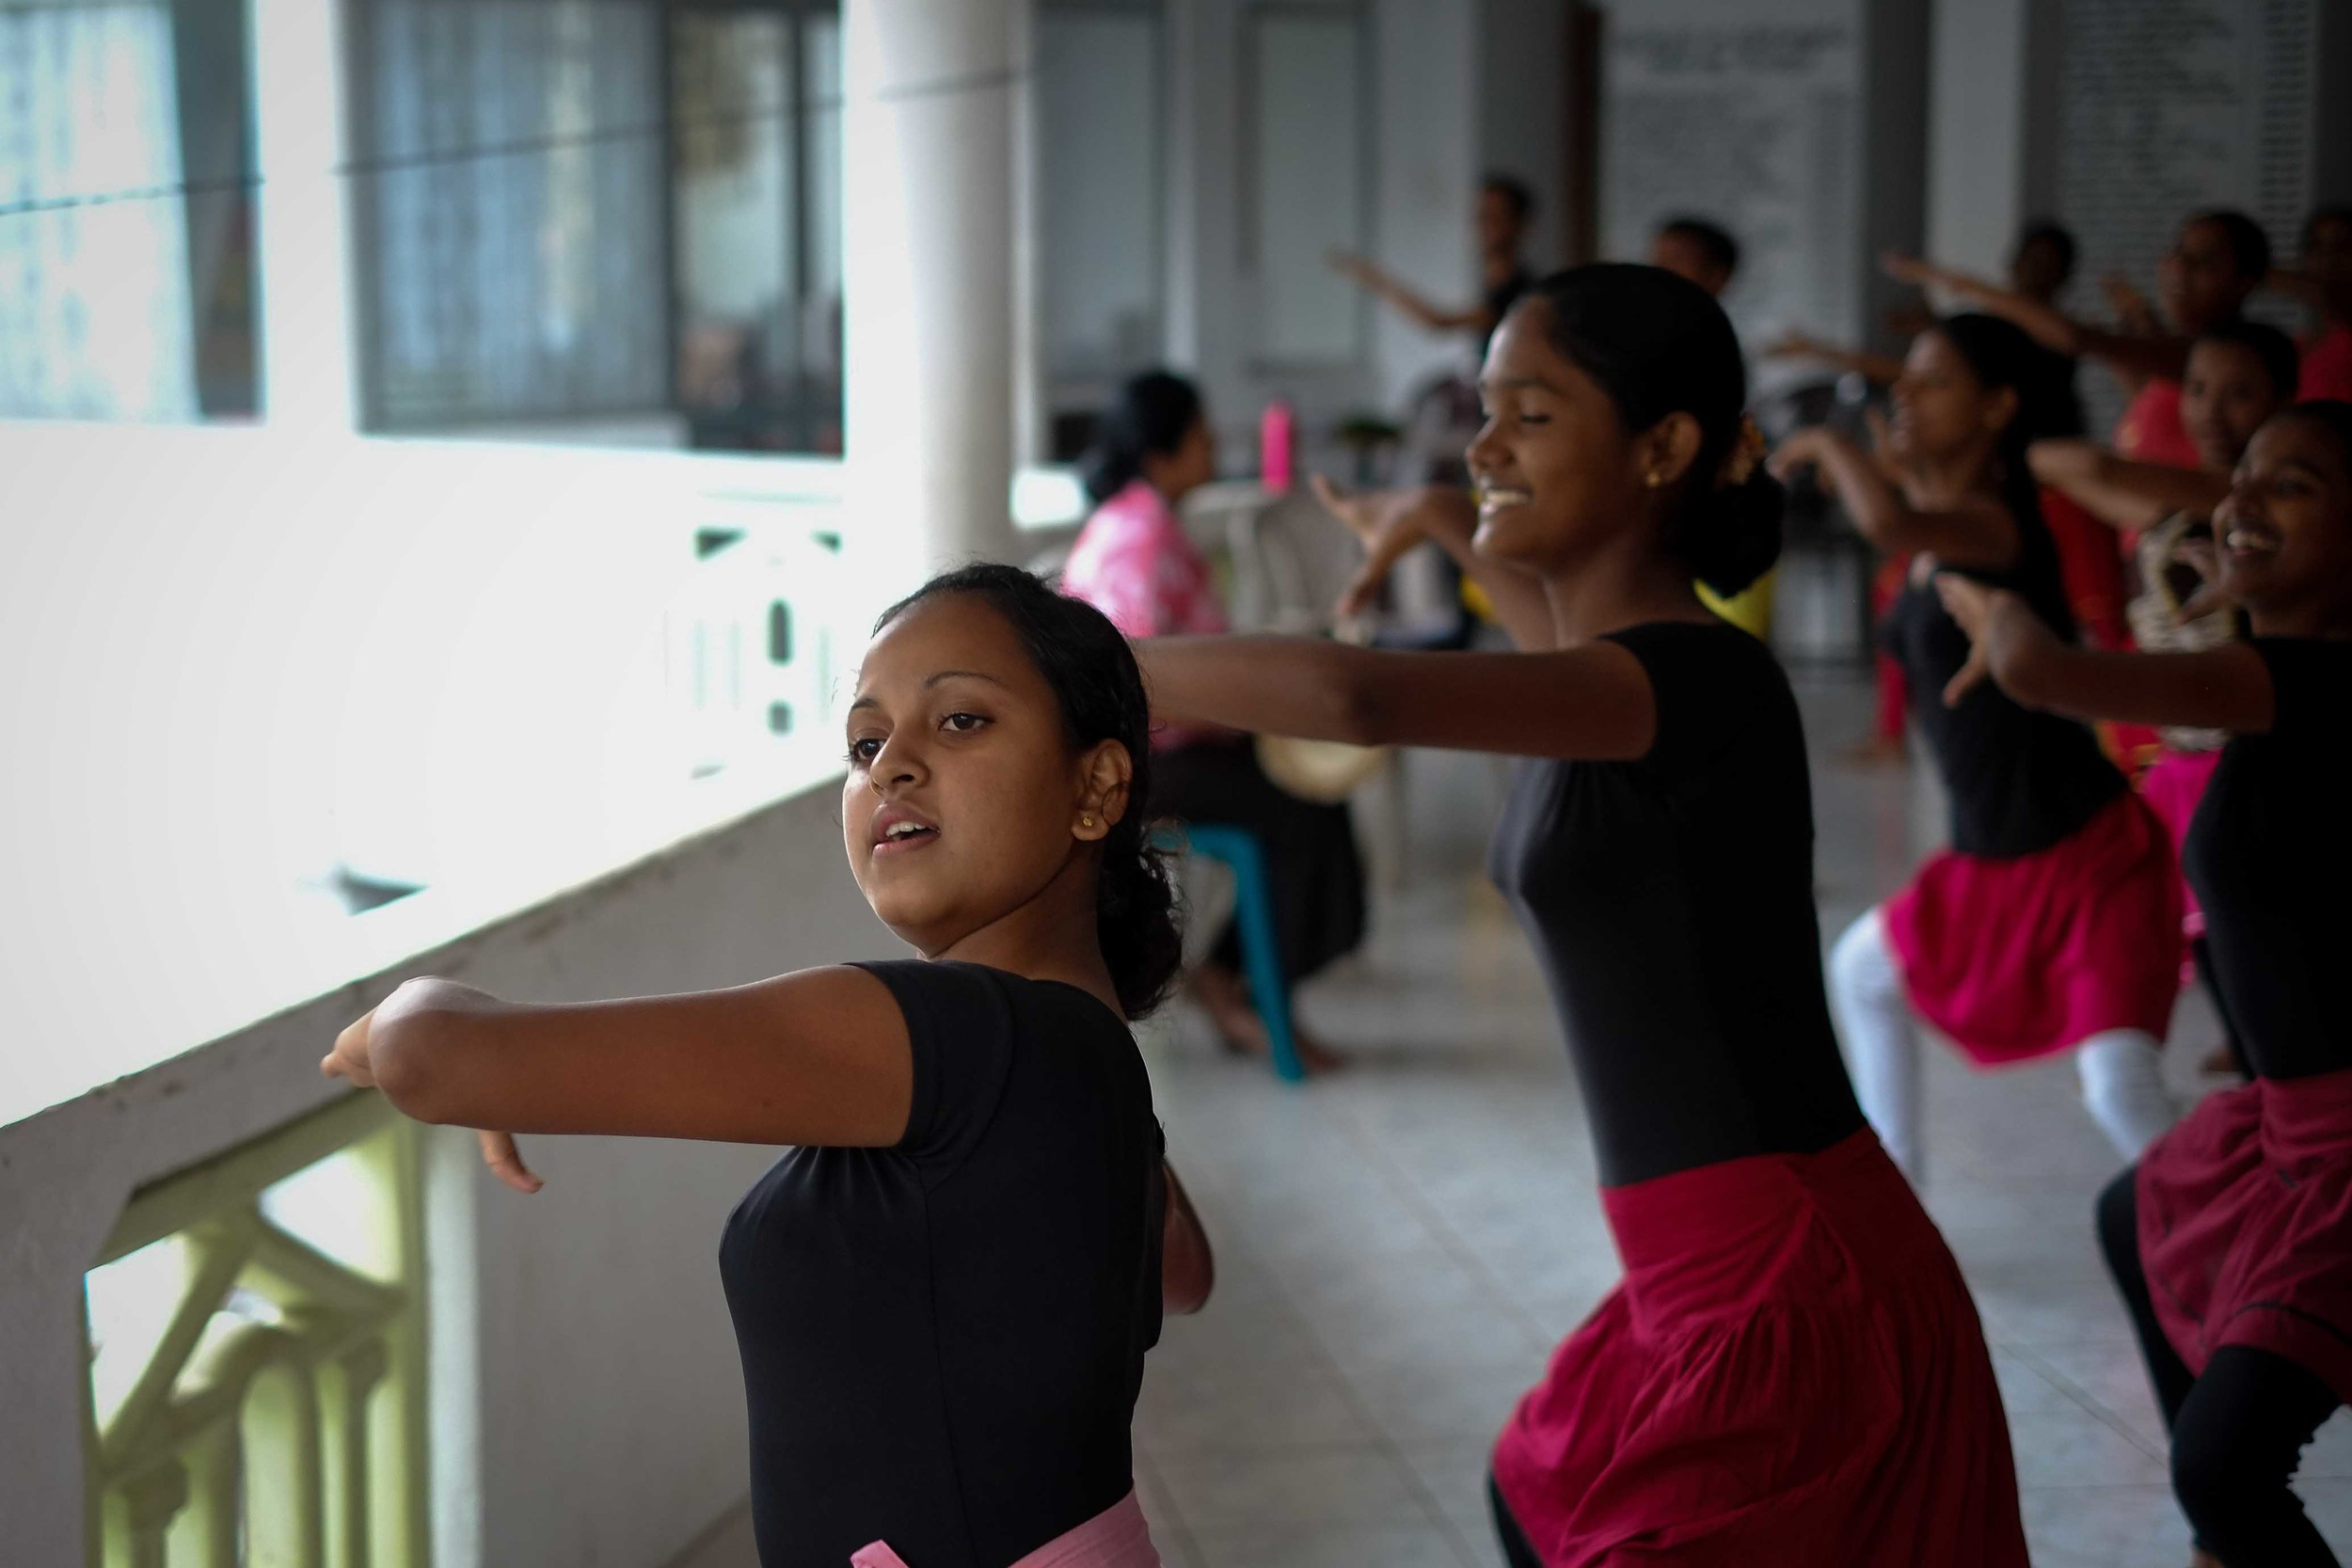 We stumbled onto a dance rehearsal in the walled city of Galle, giving us a great behind-the-scences look at traditional dancing.